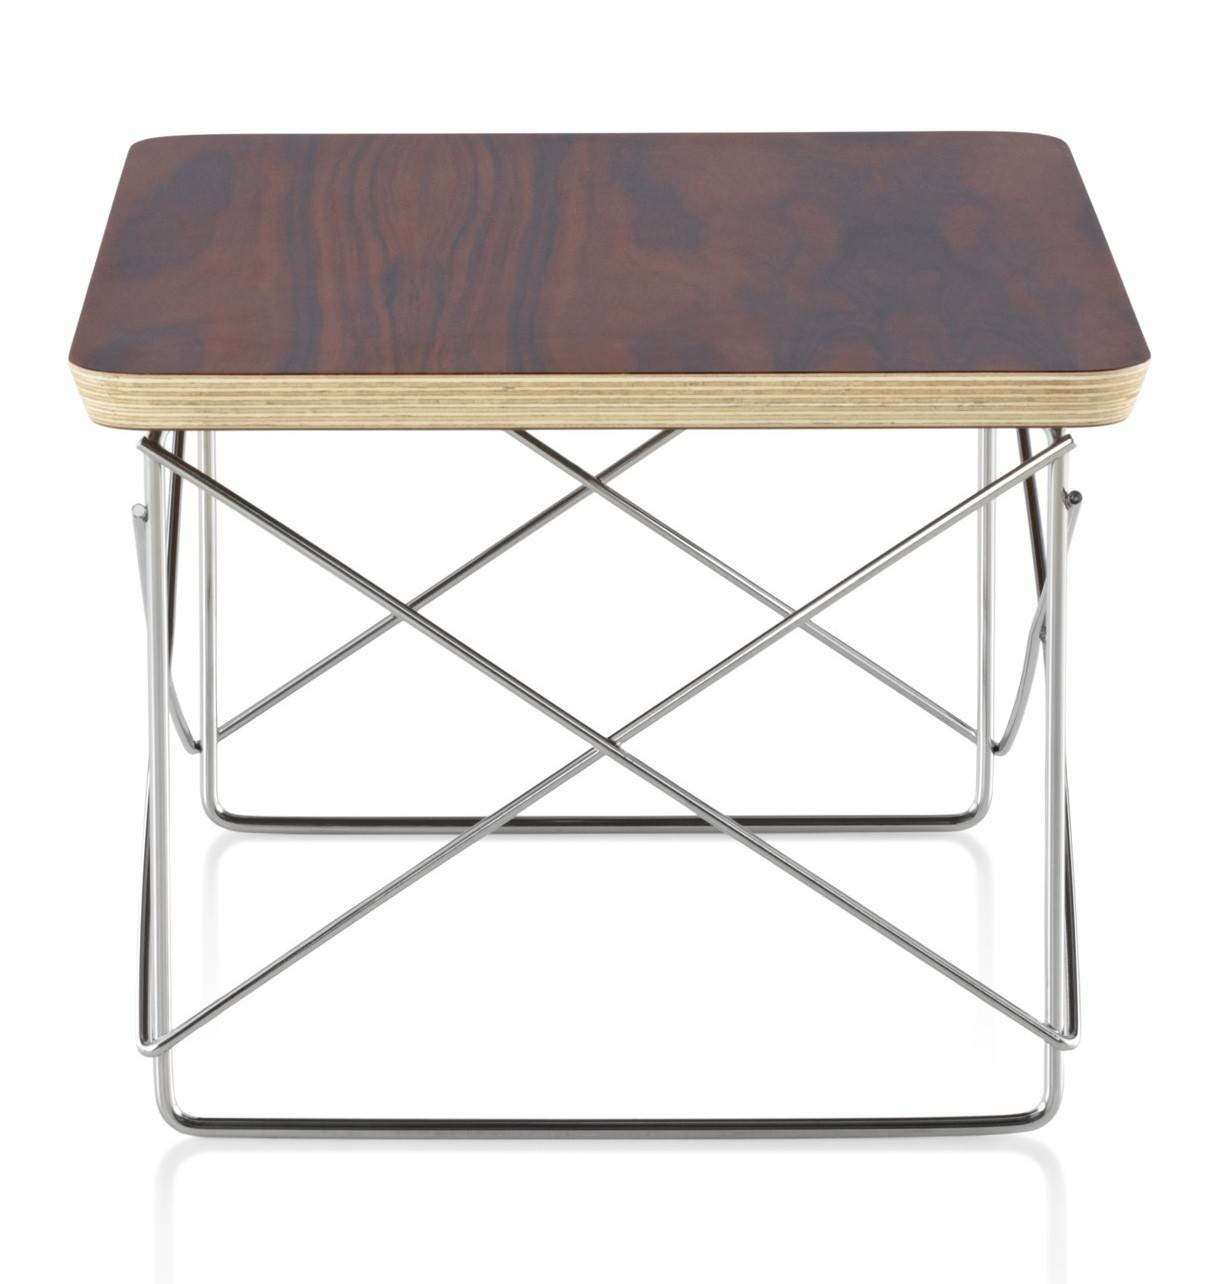 Eames wire base table table designs herman miller eames wire base low table gr canada keyboard keysfo Gallery